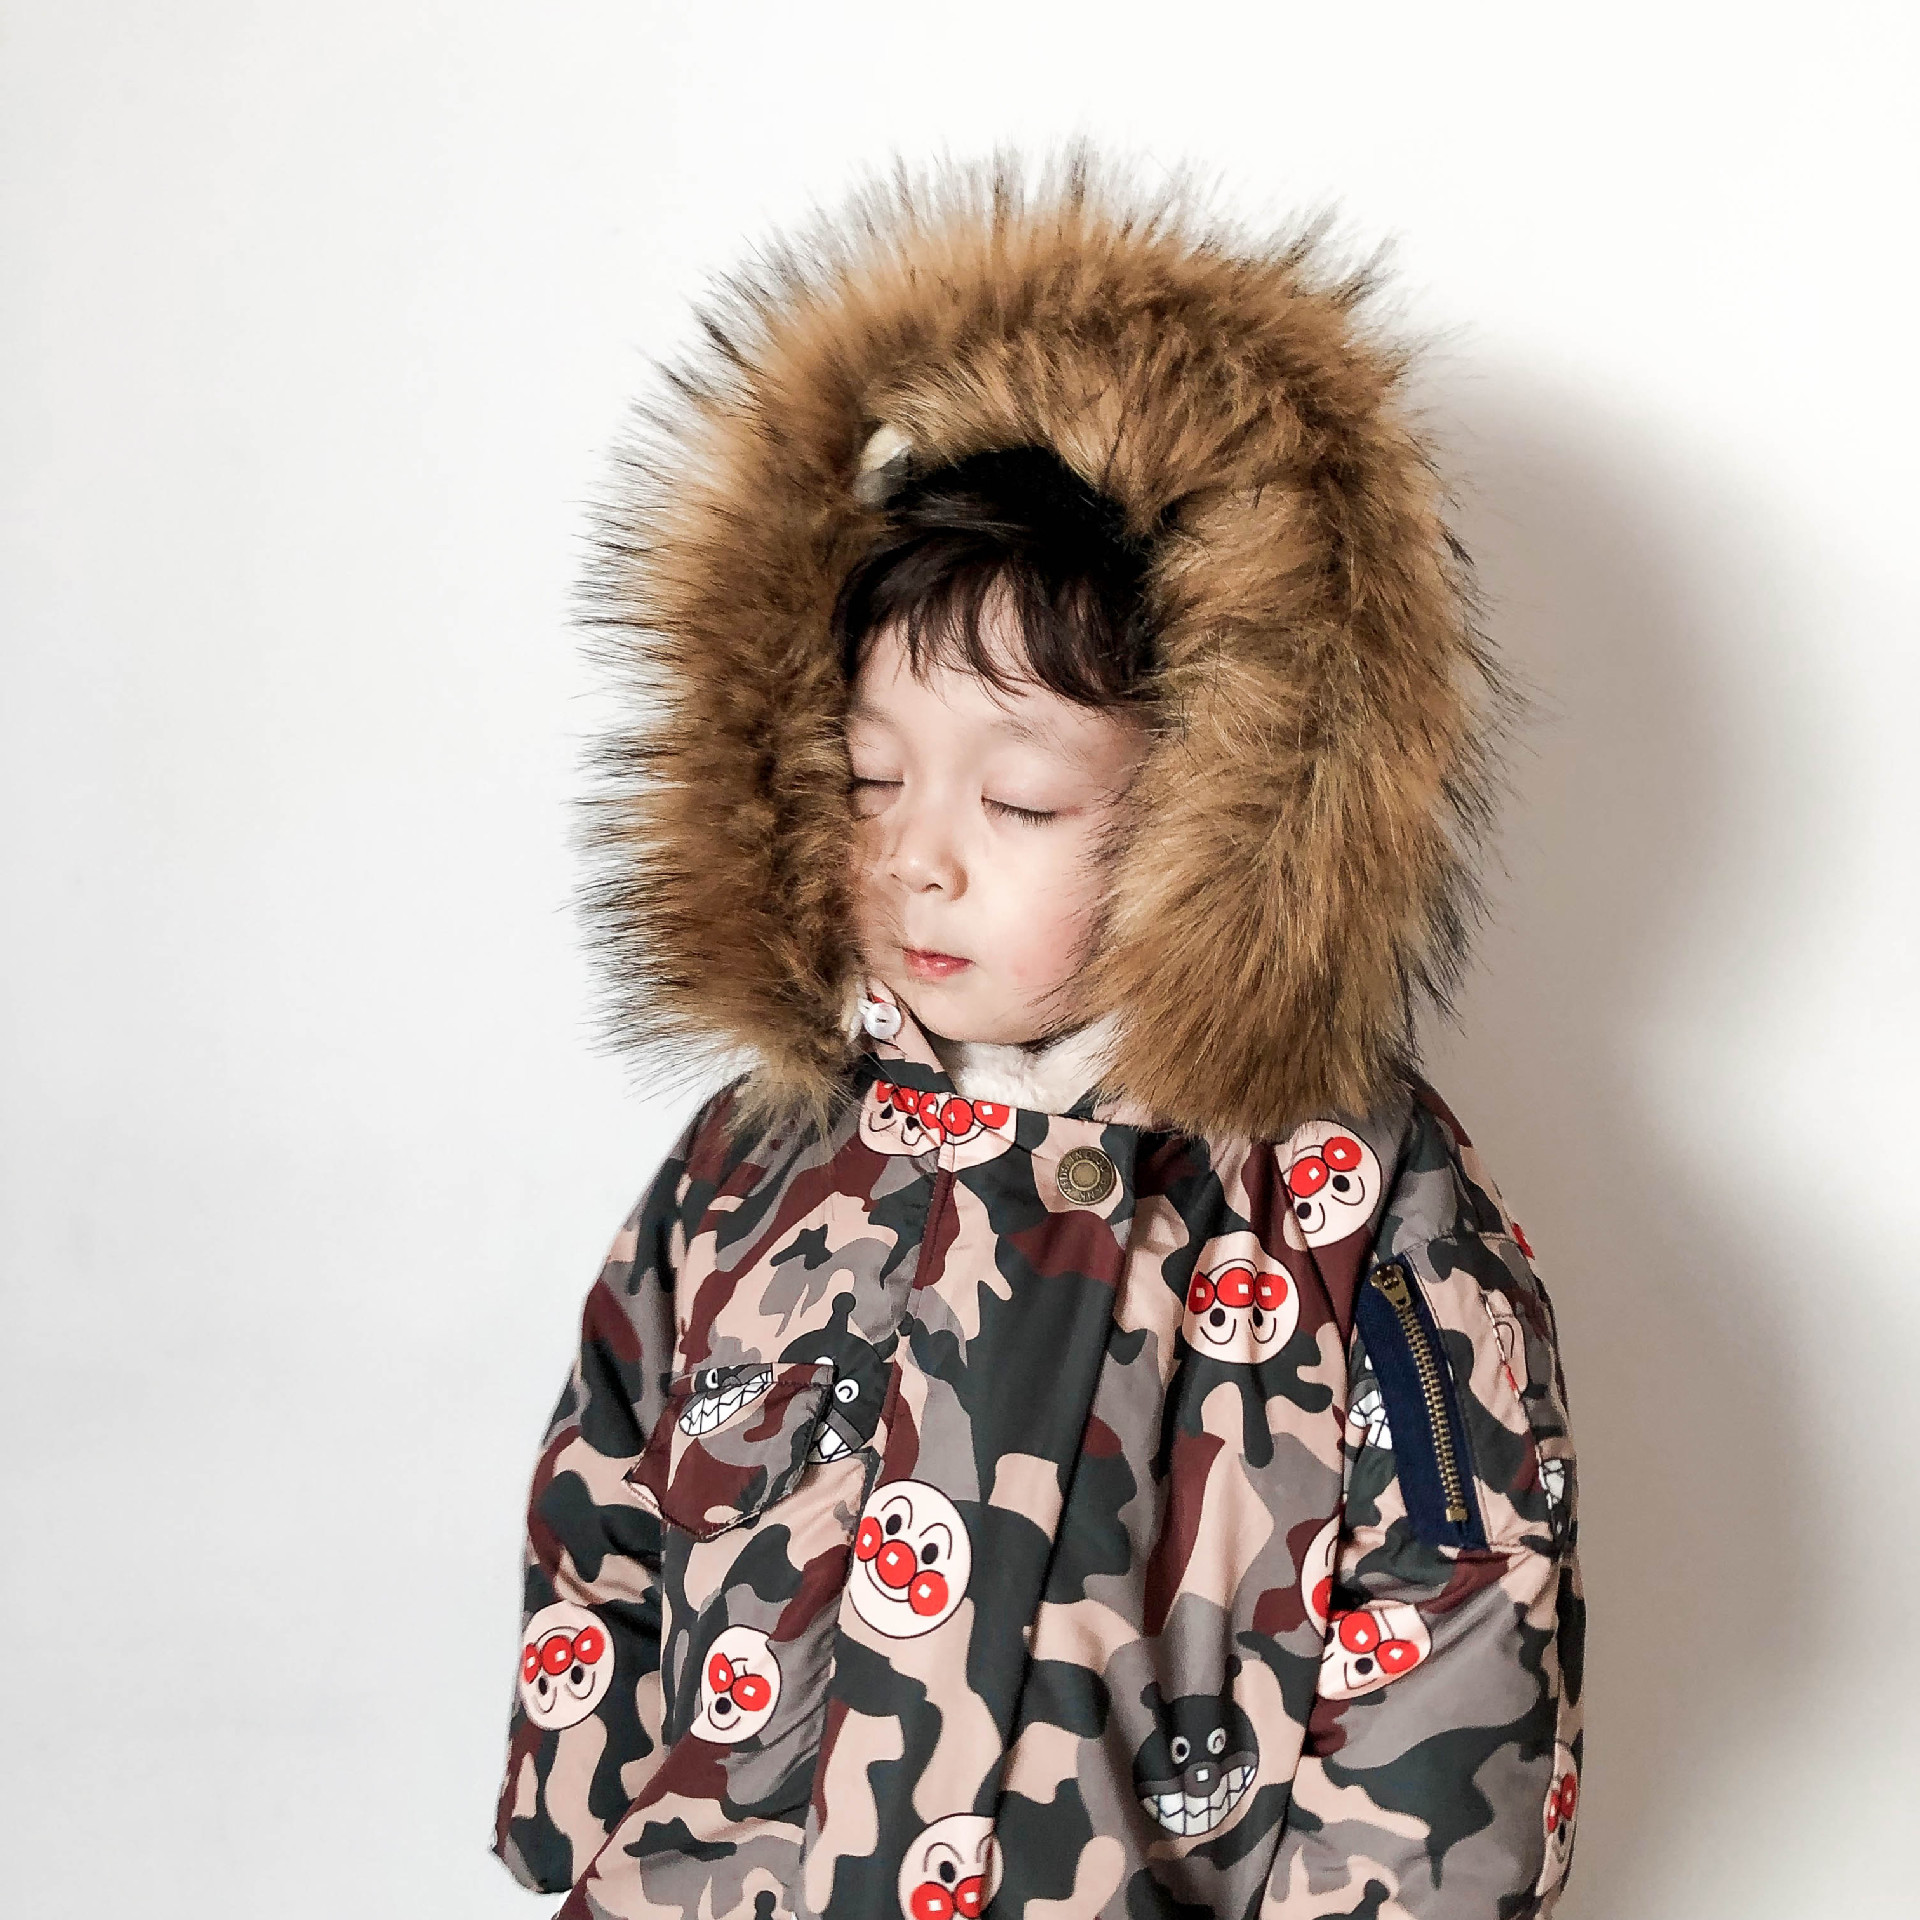 winter jacket boys winter jacket with fur snowsuit winter coat girl toddler winter coat for kids duck down winter coat girlwinter jacket boys winter jacket with fur snowsuit winter coat girl toddler winter coat for kids duck down winter coat girl